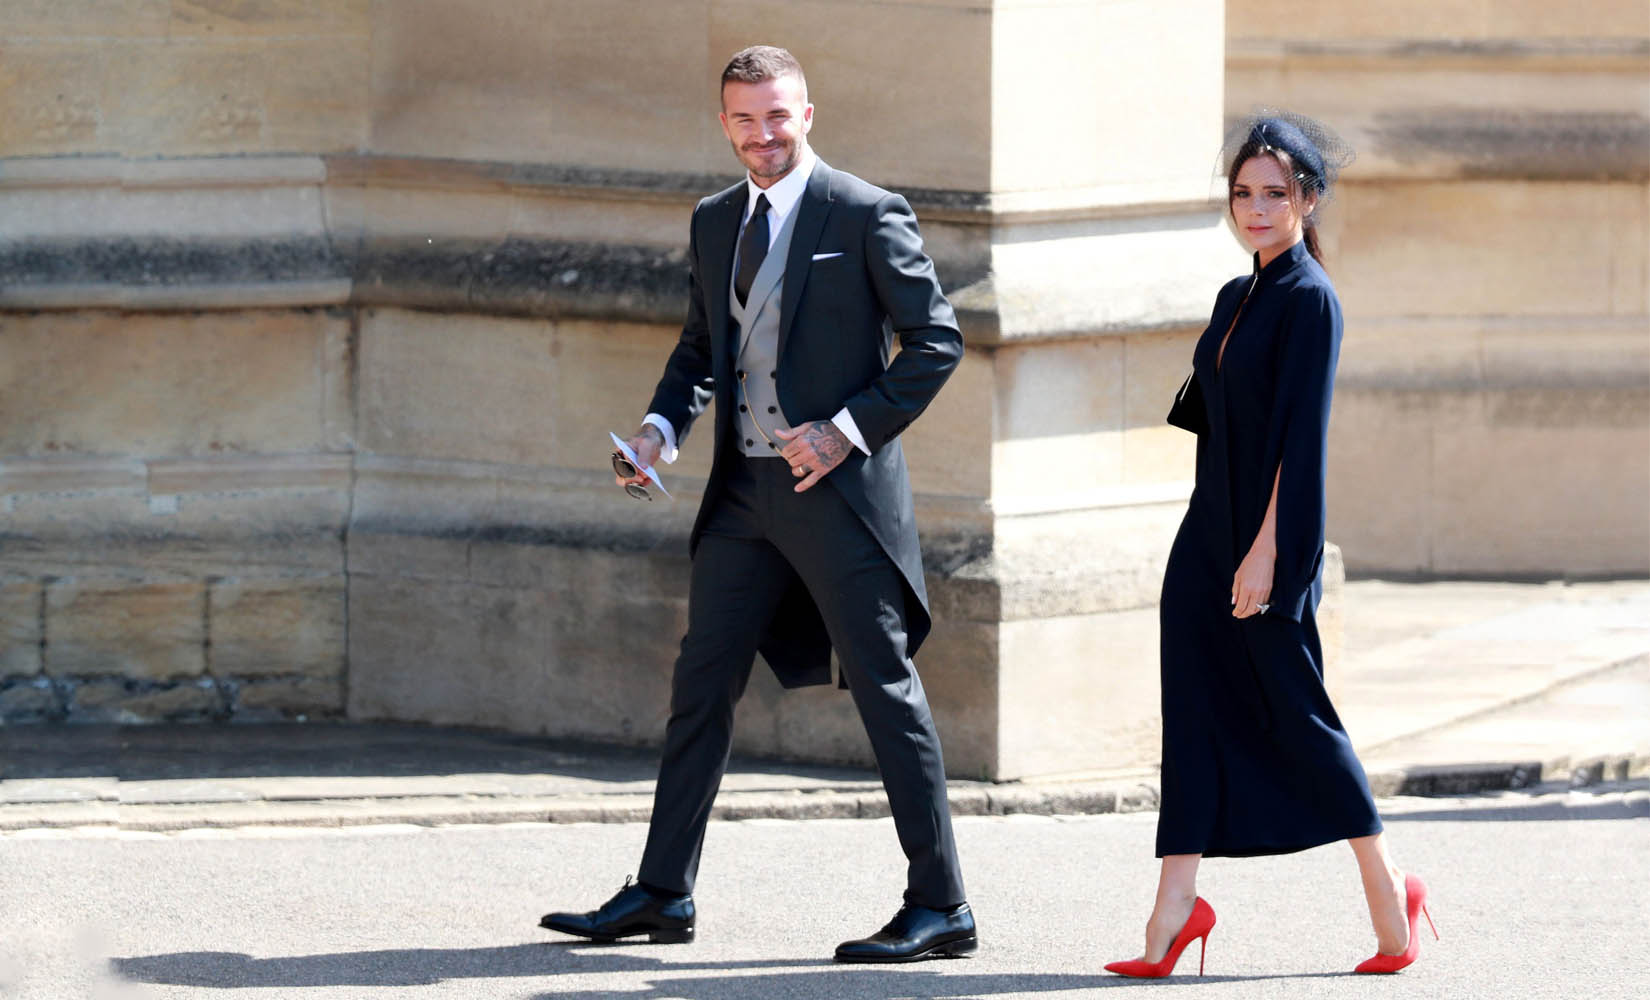 David Bechkam Shined In Dior Homme at The Royal Wedding 55bdad0ce8c